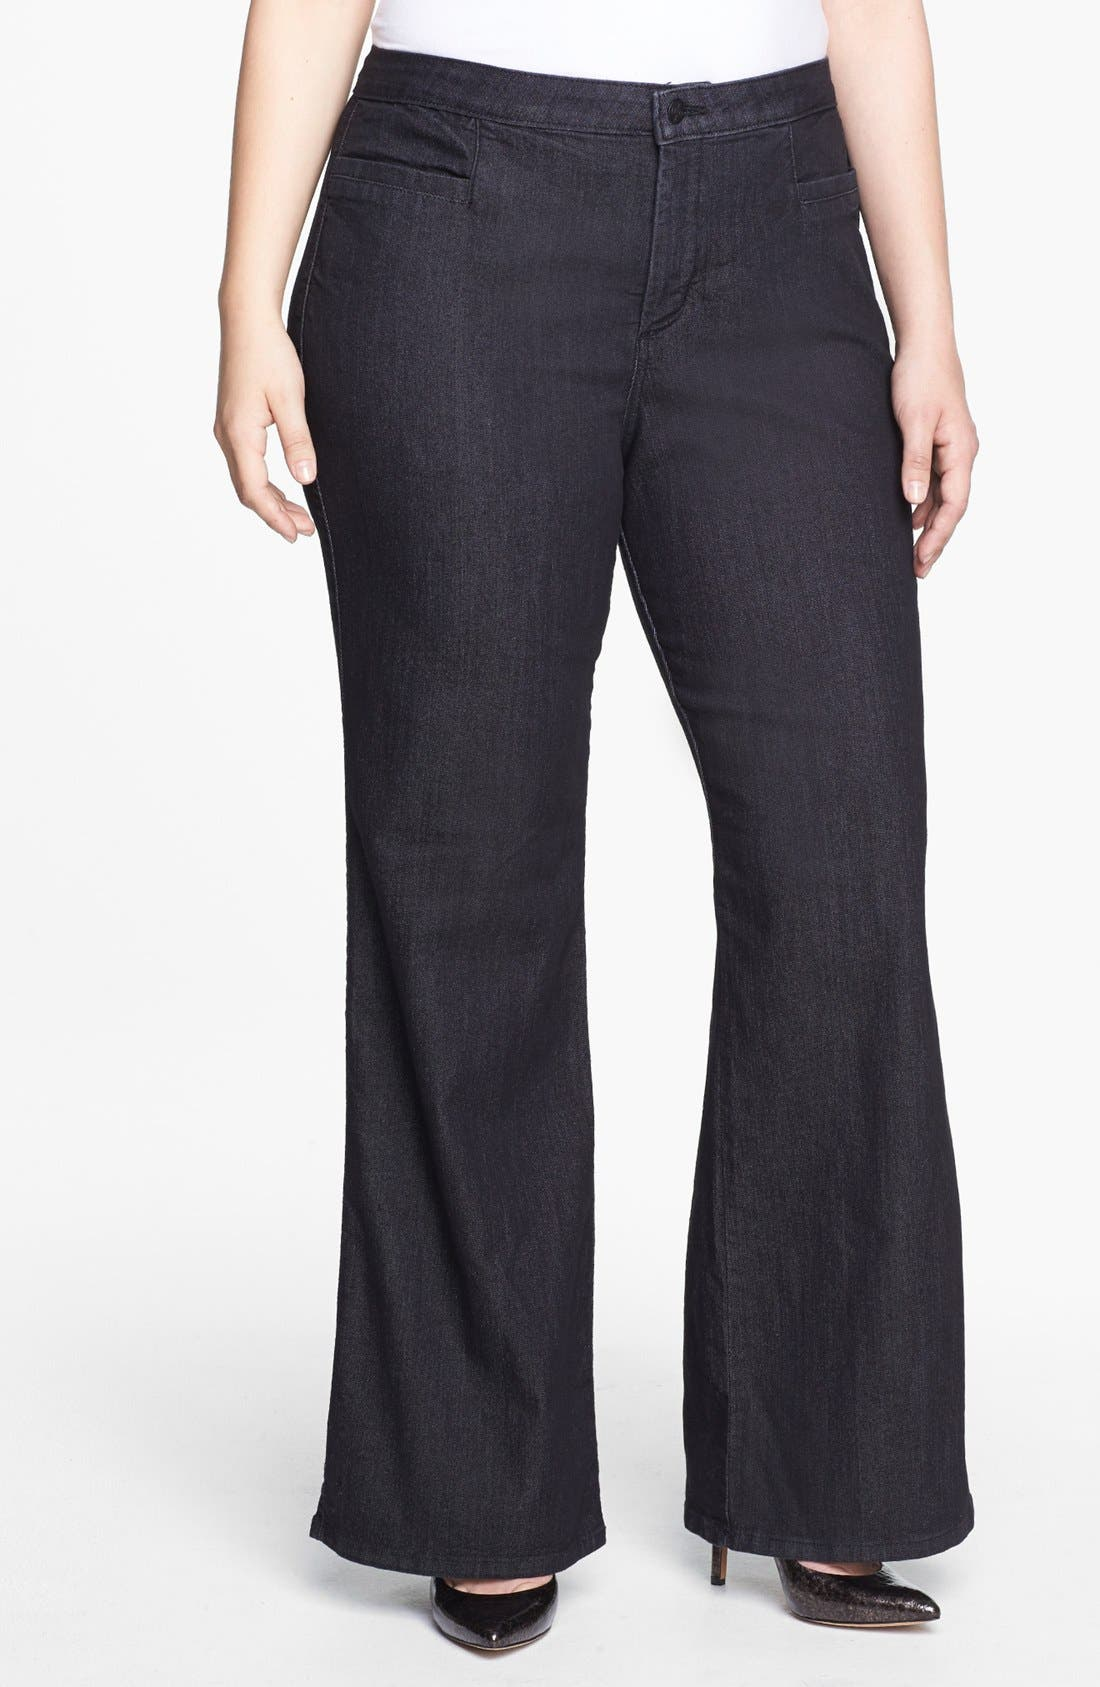 Alternate Image 1 Selected - NYDJ 'Filipa' Stretch Trouser Jeans (Dark Enzyme) (Plus Size)